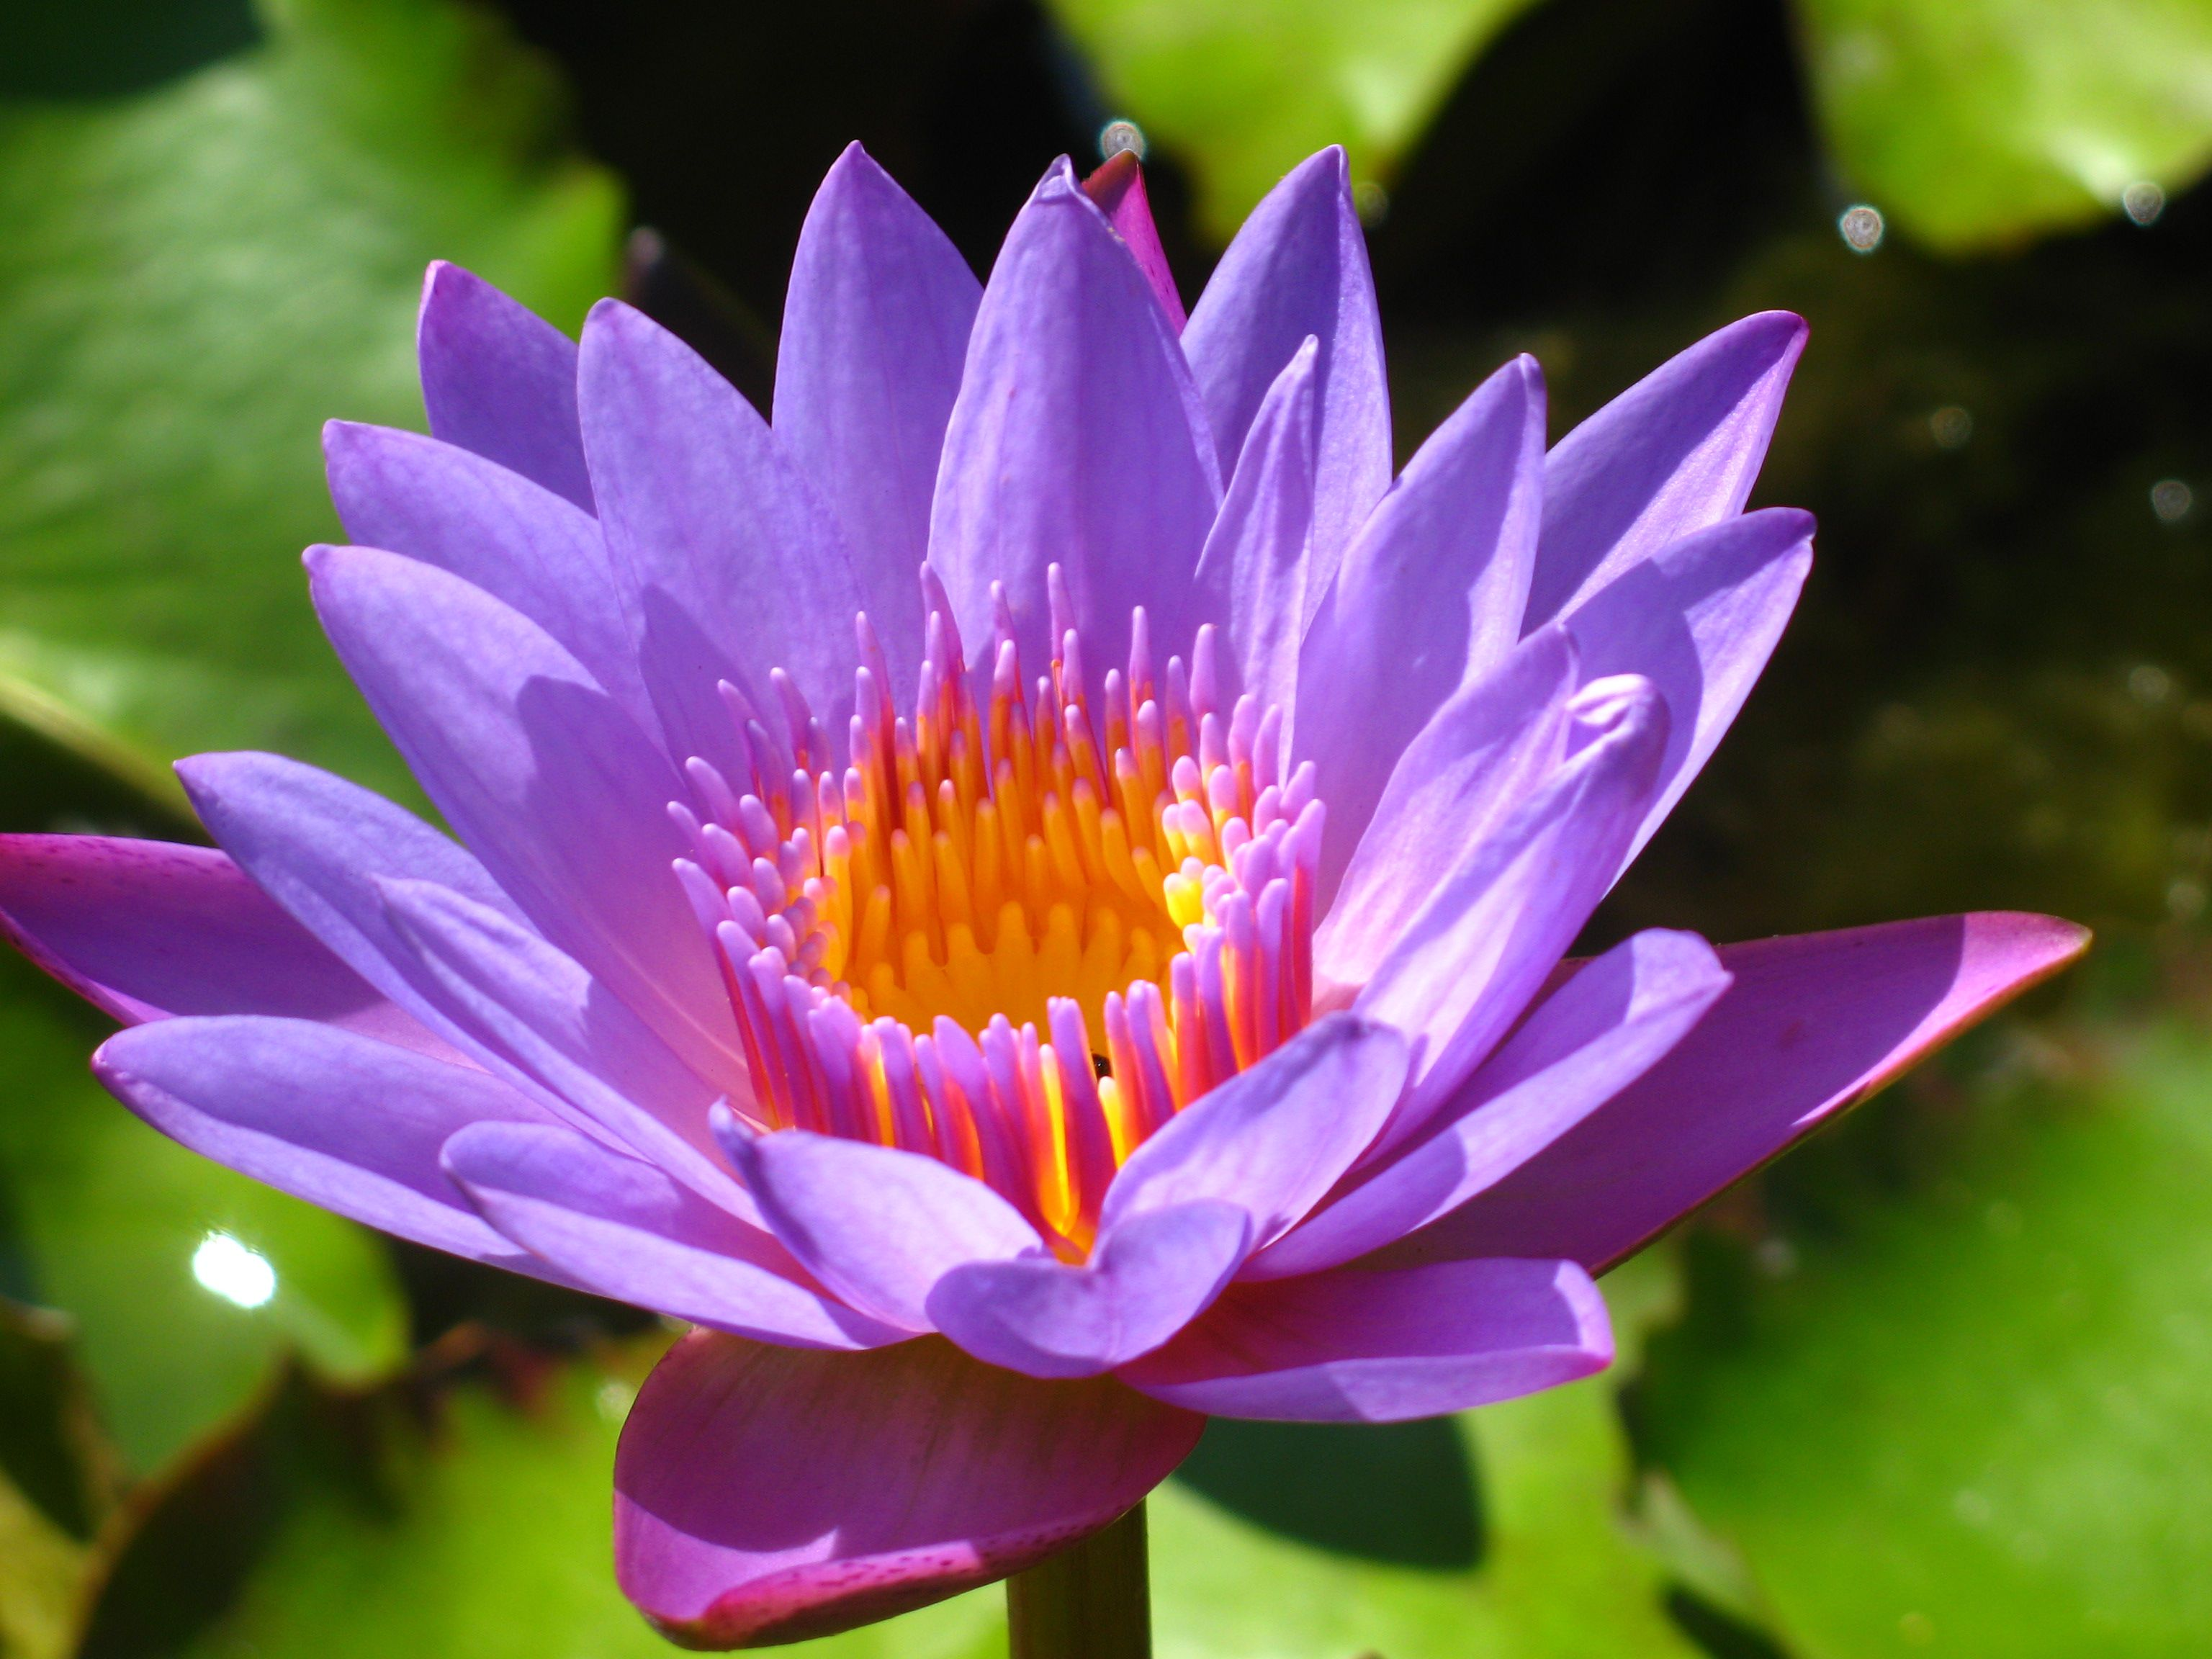 26 best water lillies images on pinterest lotus flower gardens water lily or lotus flowers photo fanpop izmirmasajfo Gallery